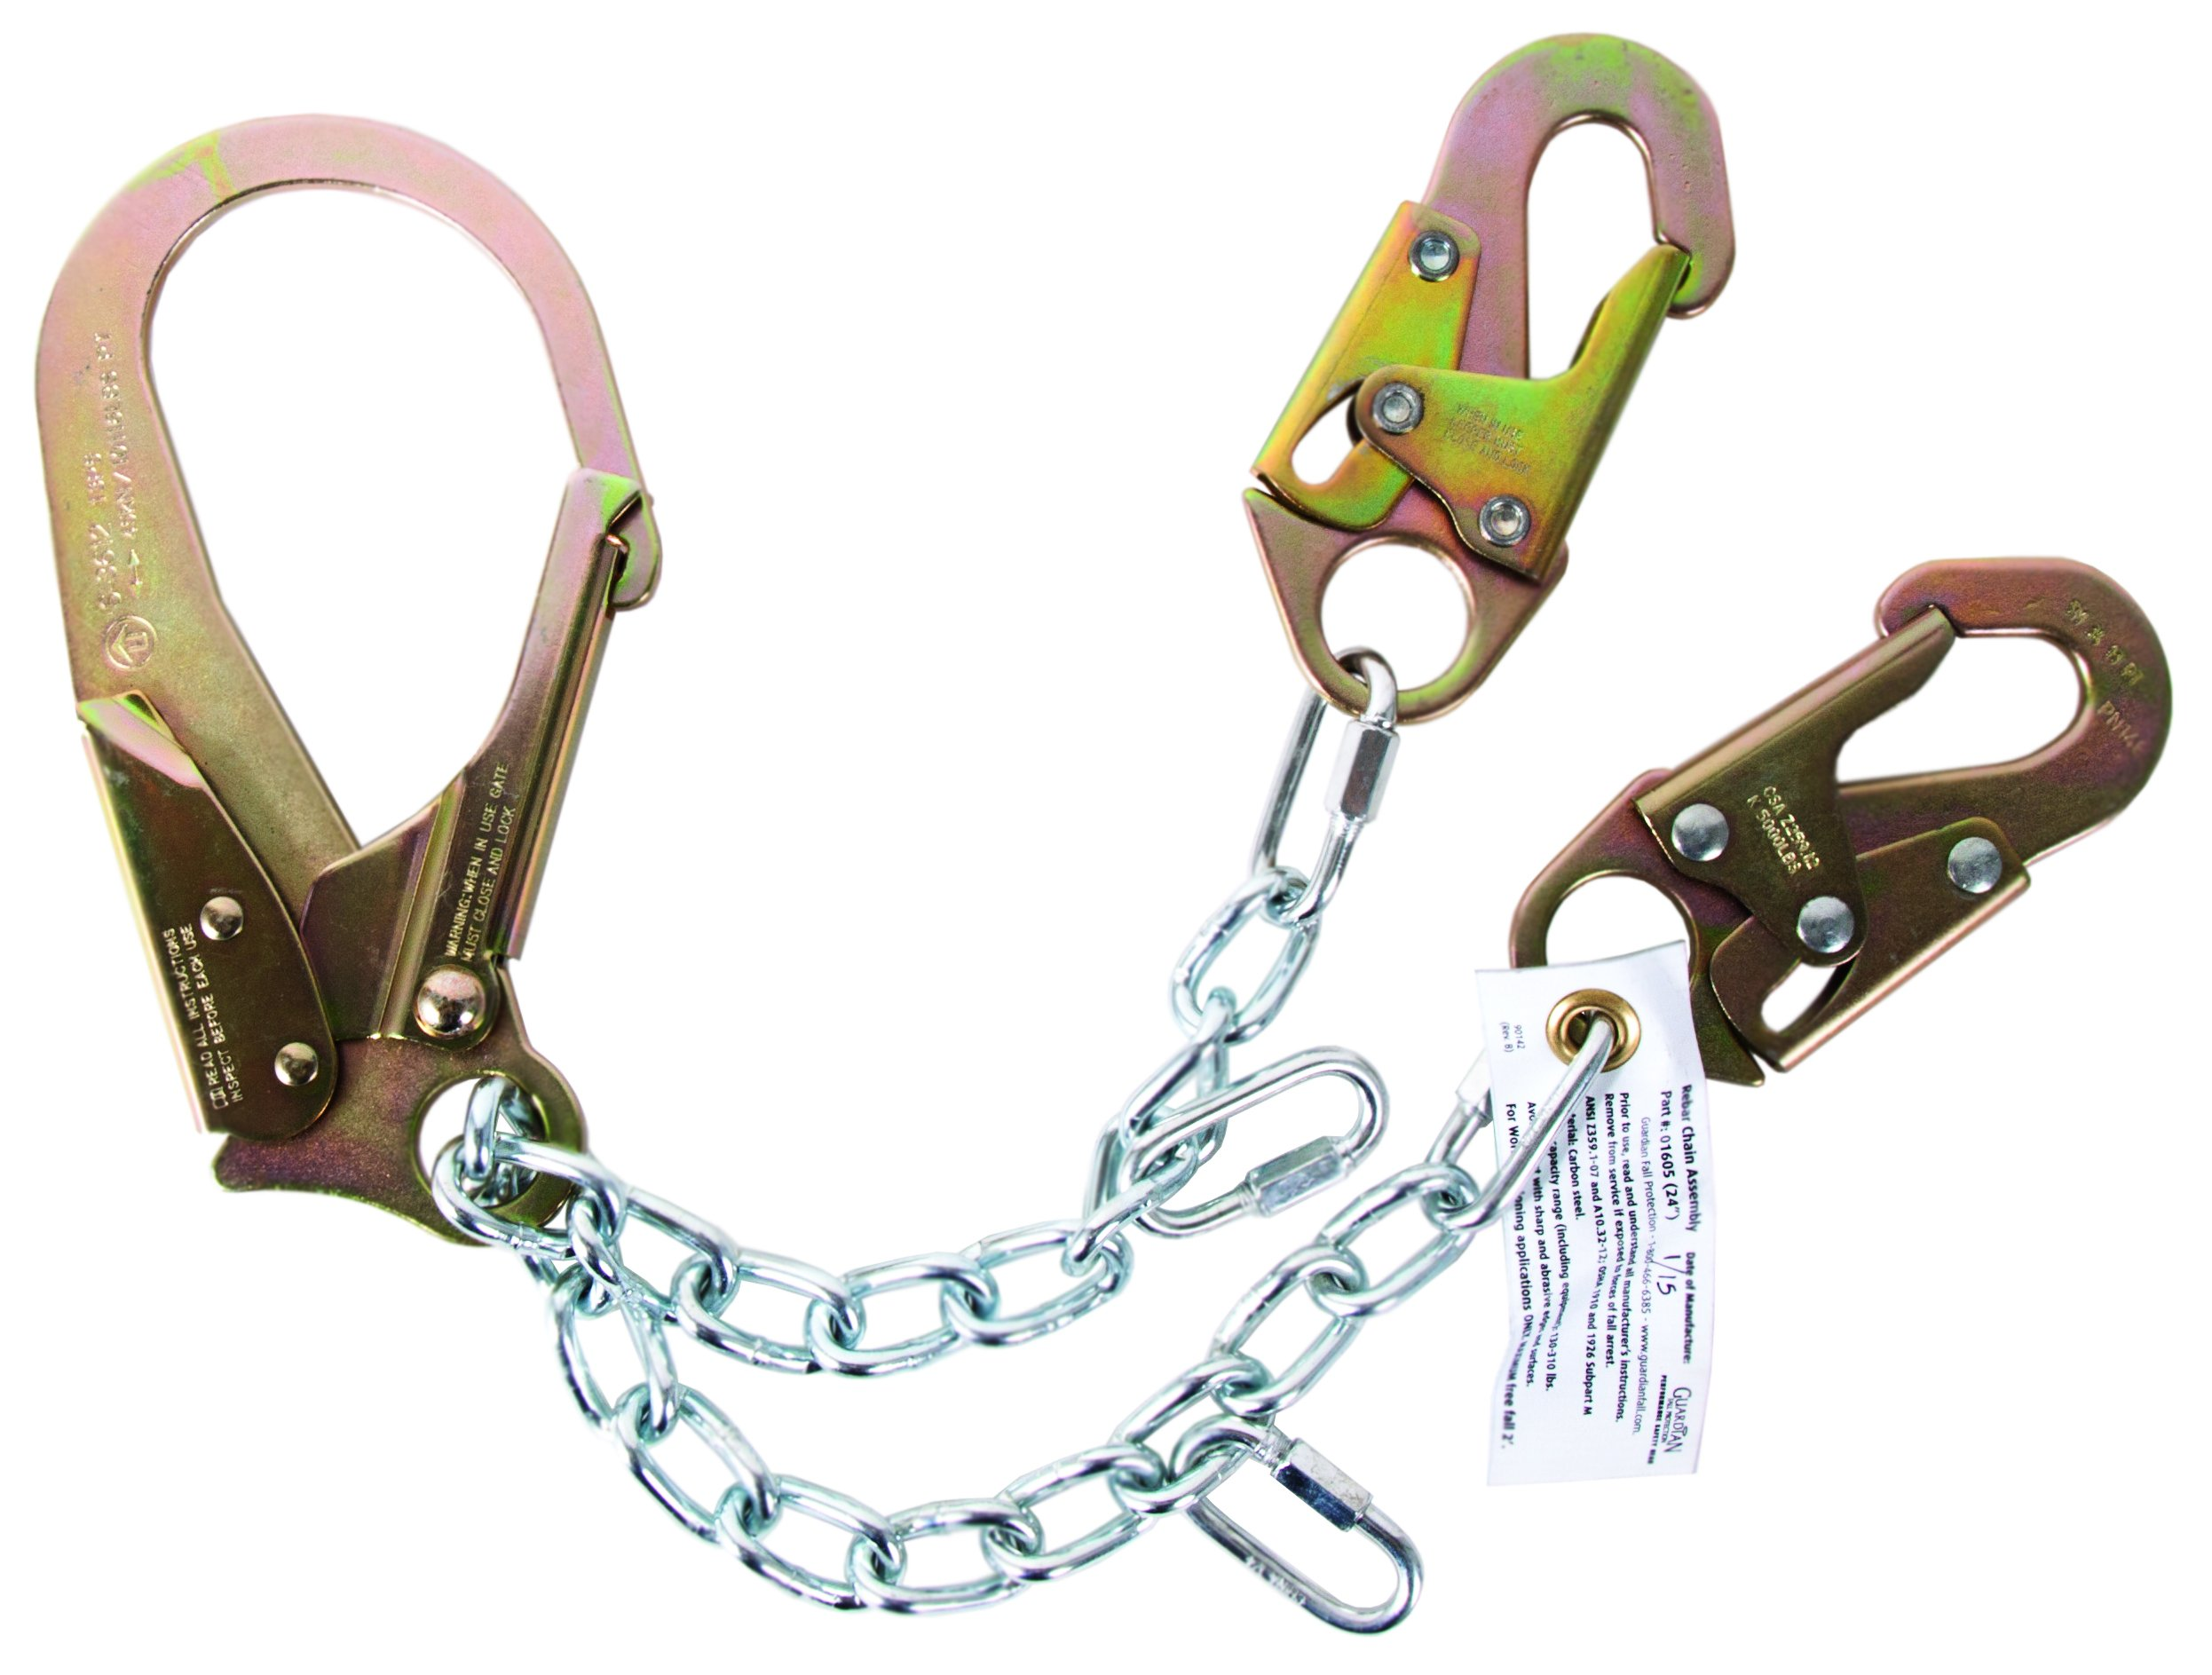 Guardian Fall Protection 01605 REBR-C Rebar Positioning Device Chain Assembly Standard by Guardian Fall Protection